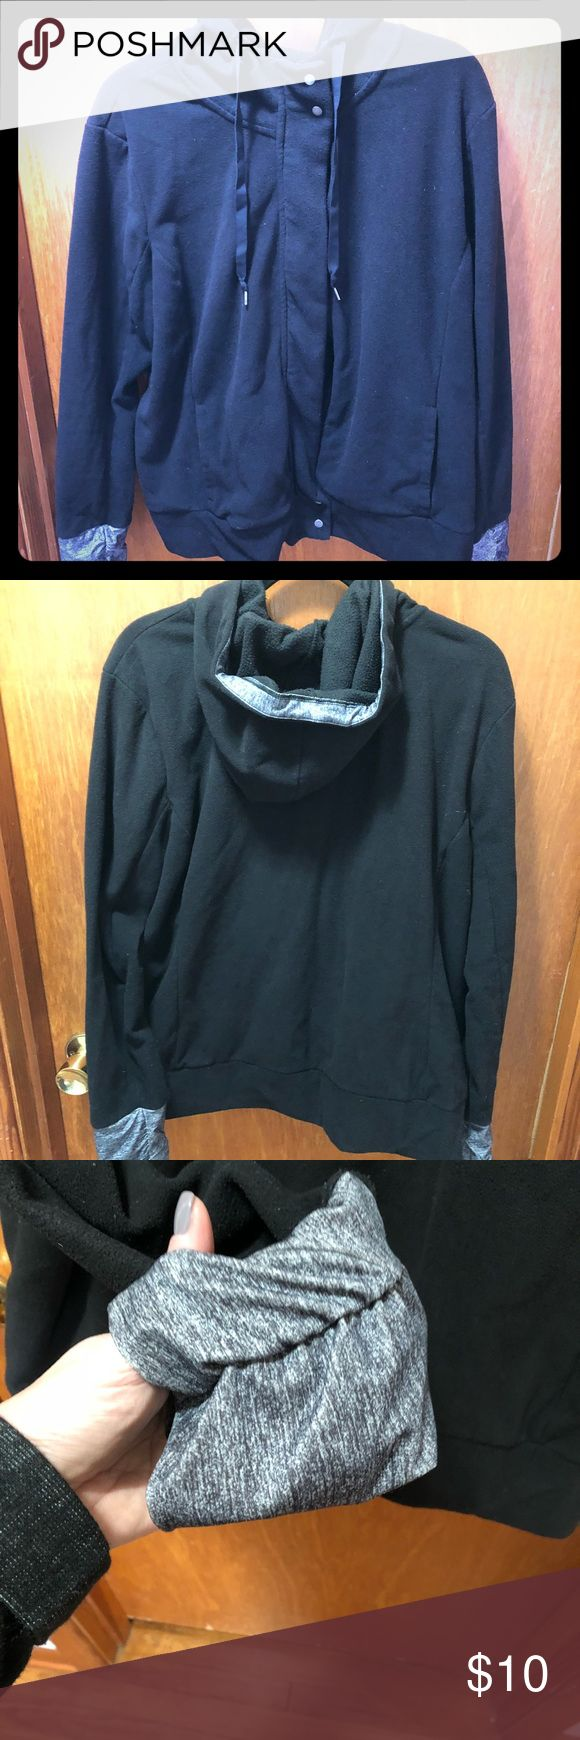 Old Navy Fleece zip hoodie Old Navy Fleece Zip and snap hoodie in black with grey hand covers and grey accent in good. Size xxl. Great for before and after gym or outdoors in mild temps. Old Navy Jackets & Coats